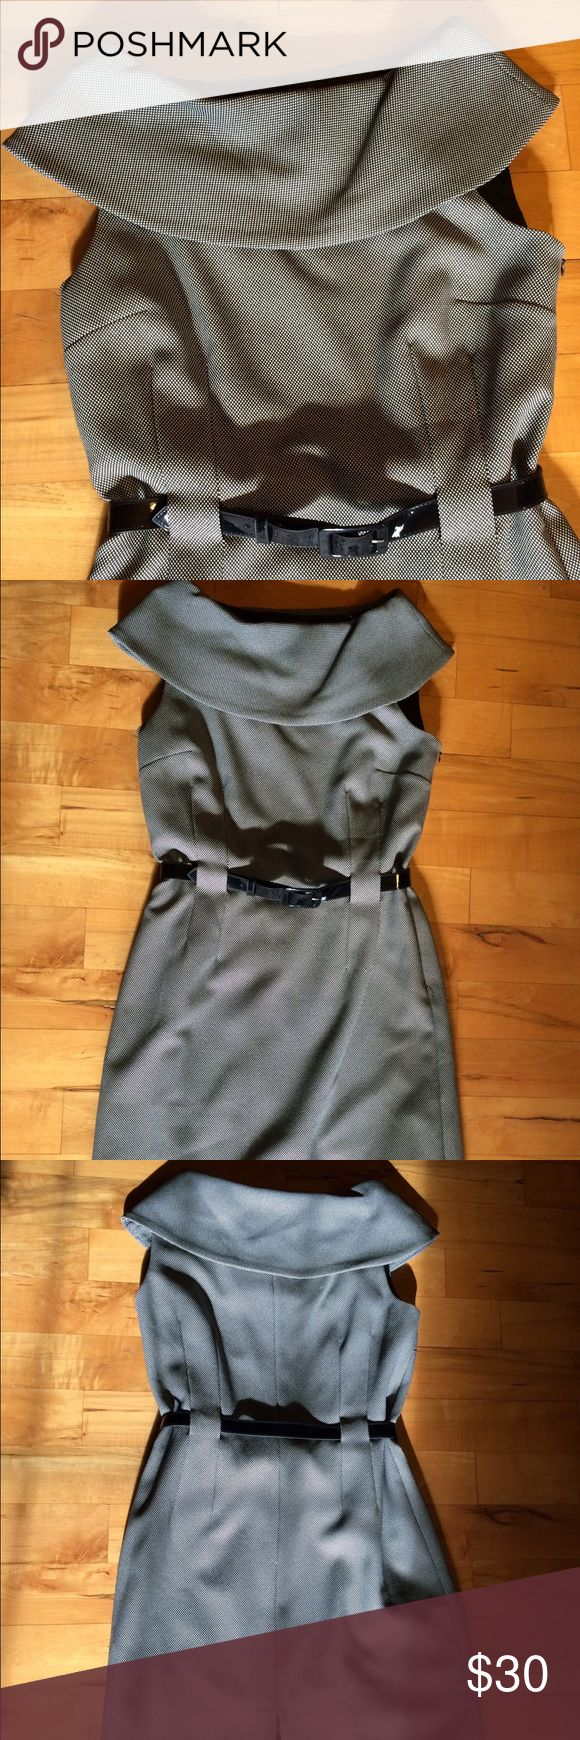 """🆕👗Tahari Mad Men style dress Beautiful Tahari dress, large collar and flattering belted fit. Side zip and back slit. I don't think I ever wore this dress...Bust 18"""", waist 16"""", hip 19"""", length is 39"""". The fabric has some give. Tahari Dresses Midi"""